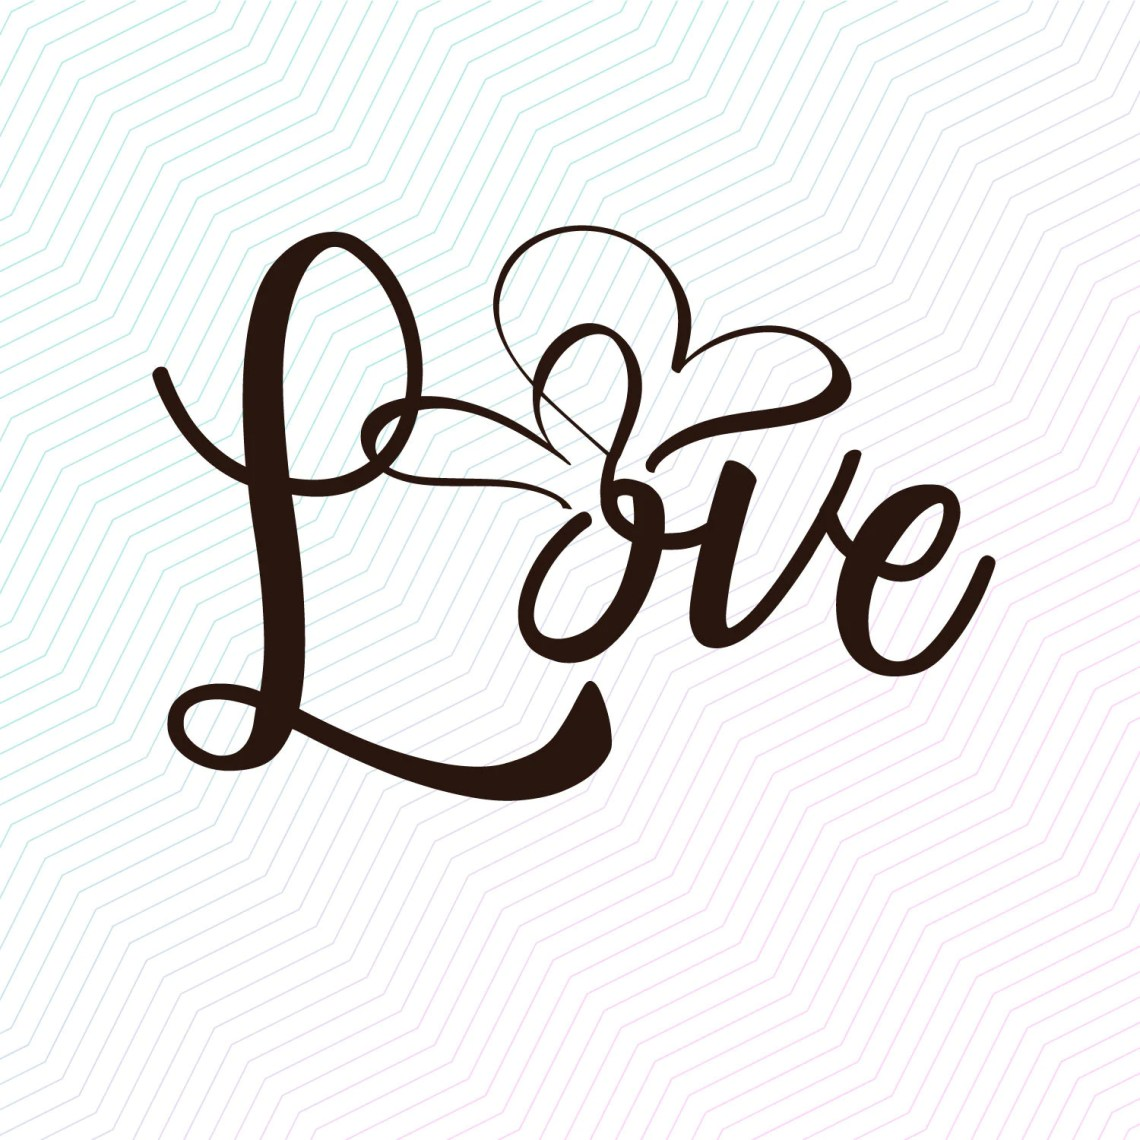 Download Love Heart svg pdf jpeg file for cricut and silhouette | Etsy